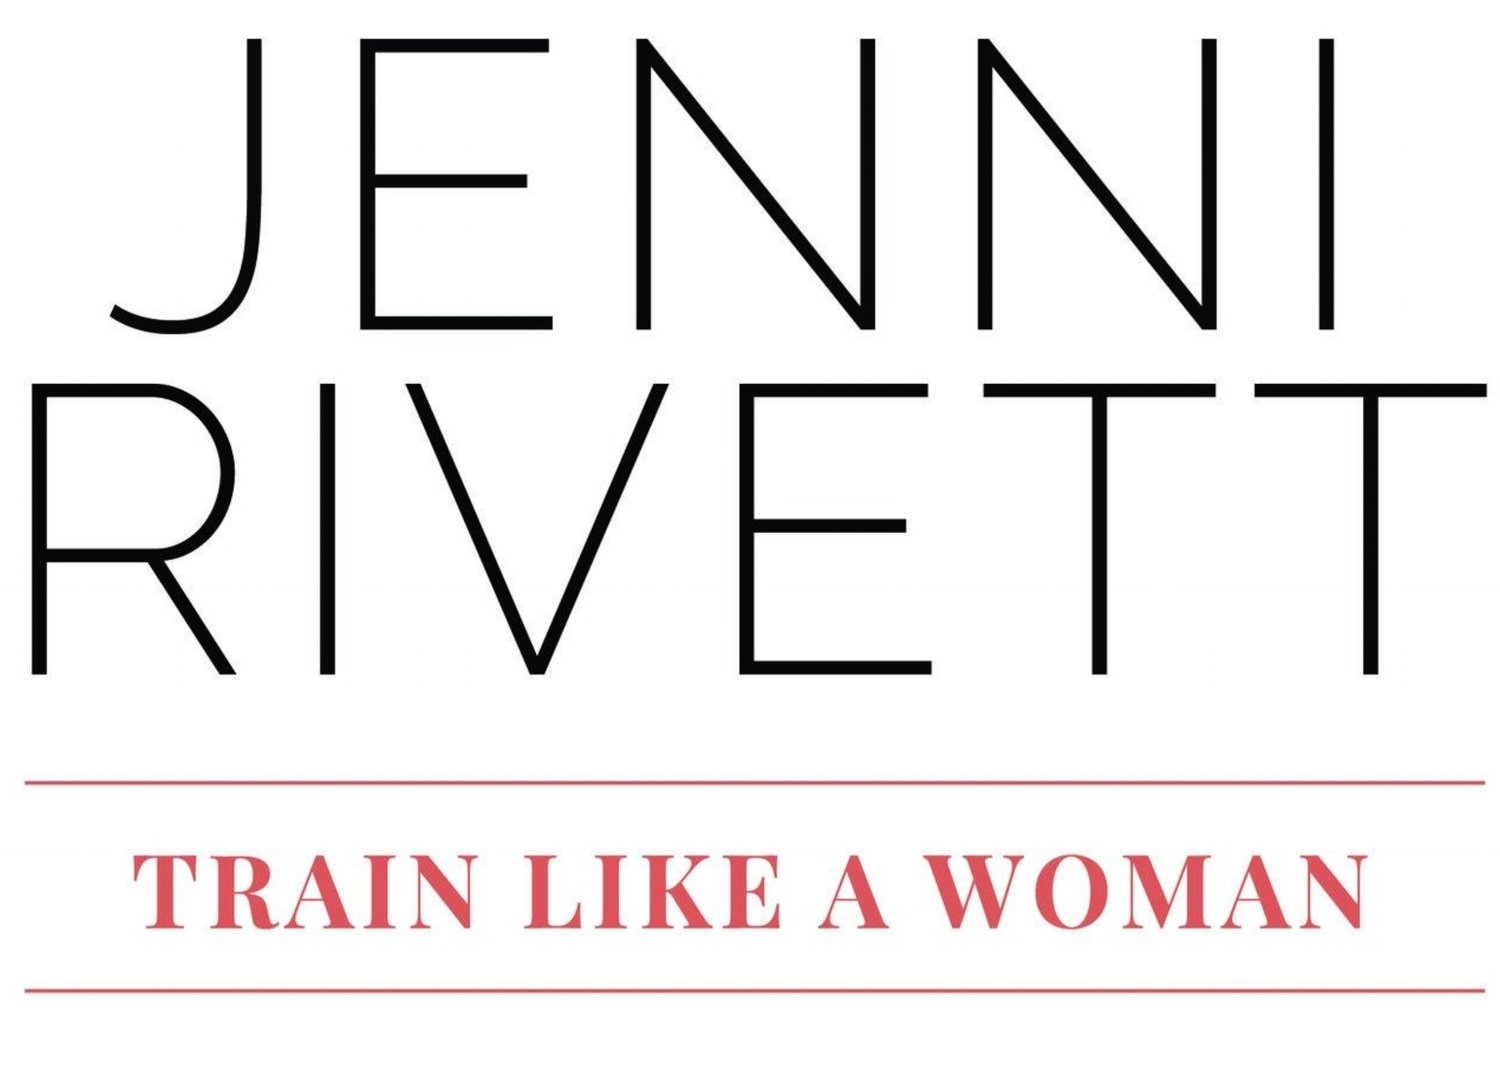 Jenni Rivett | Train like a woman